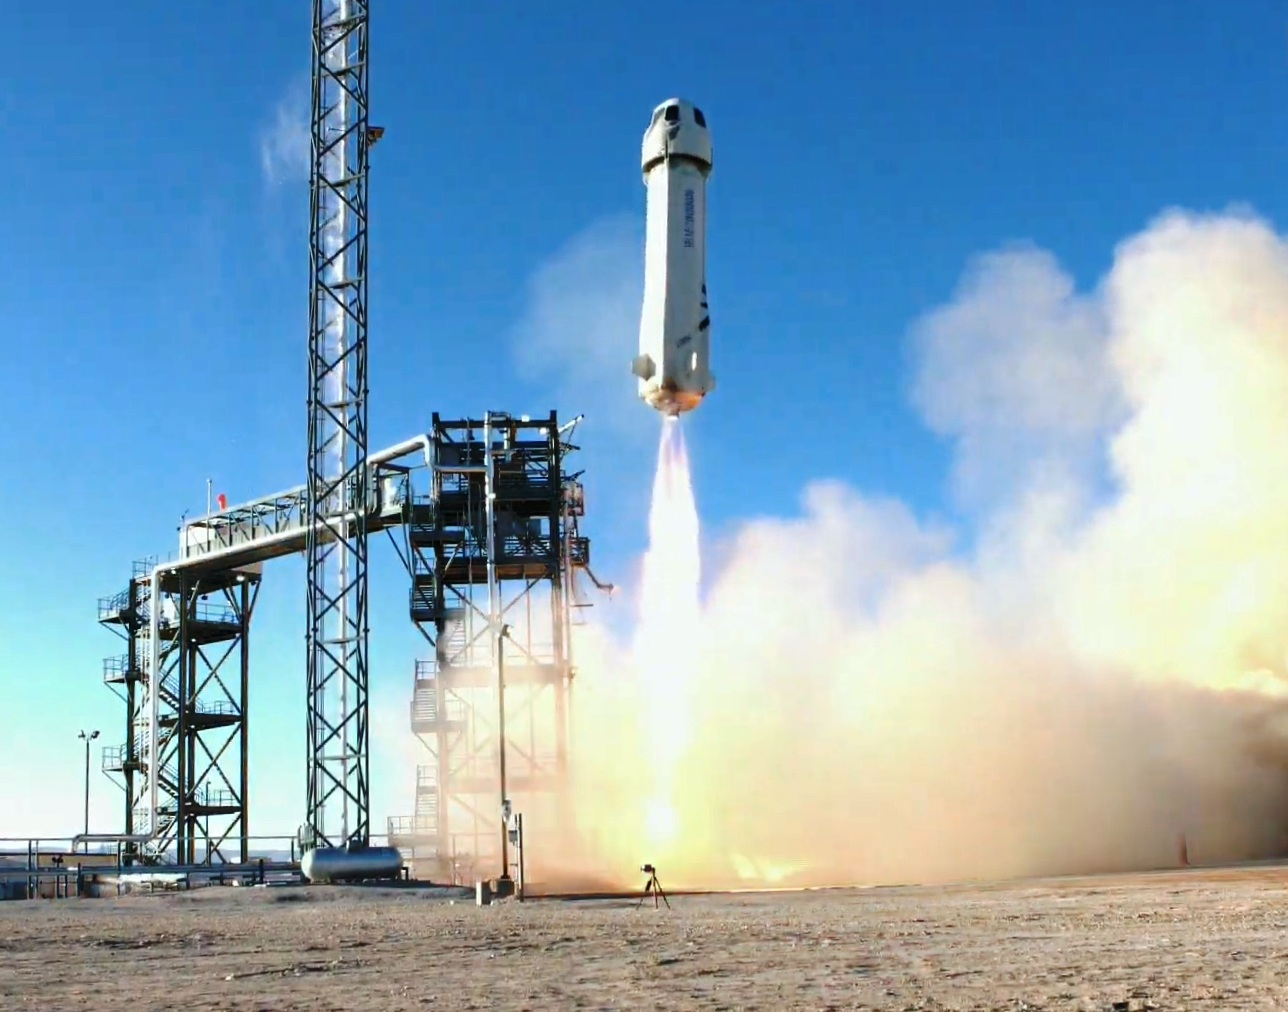 Blue Origin's mystery passenger revealed: At age 18, Oliver Daemen will be youngest spaceflier